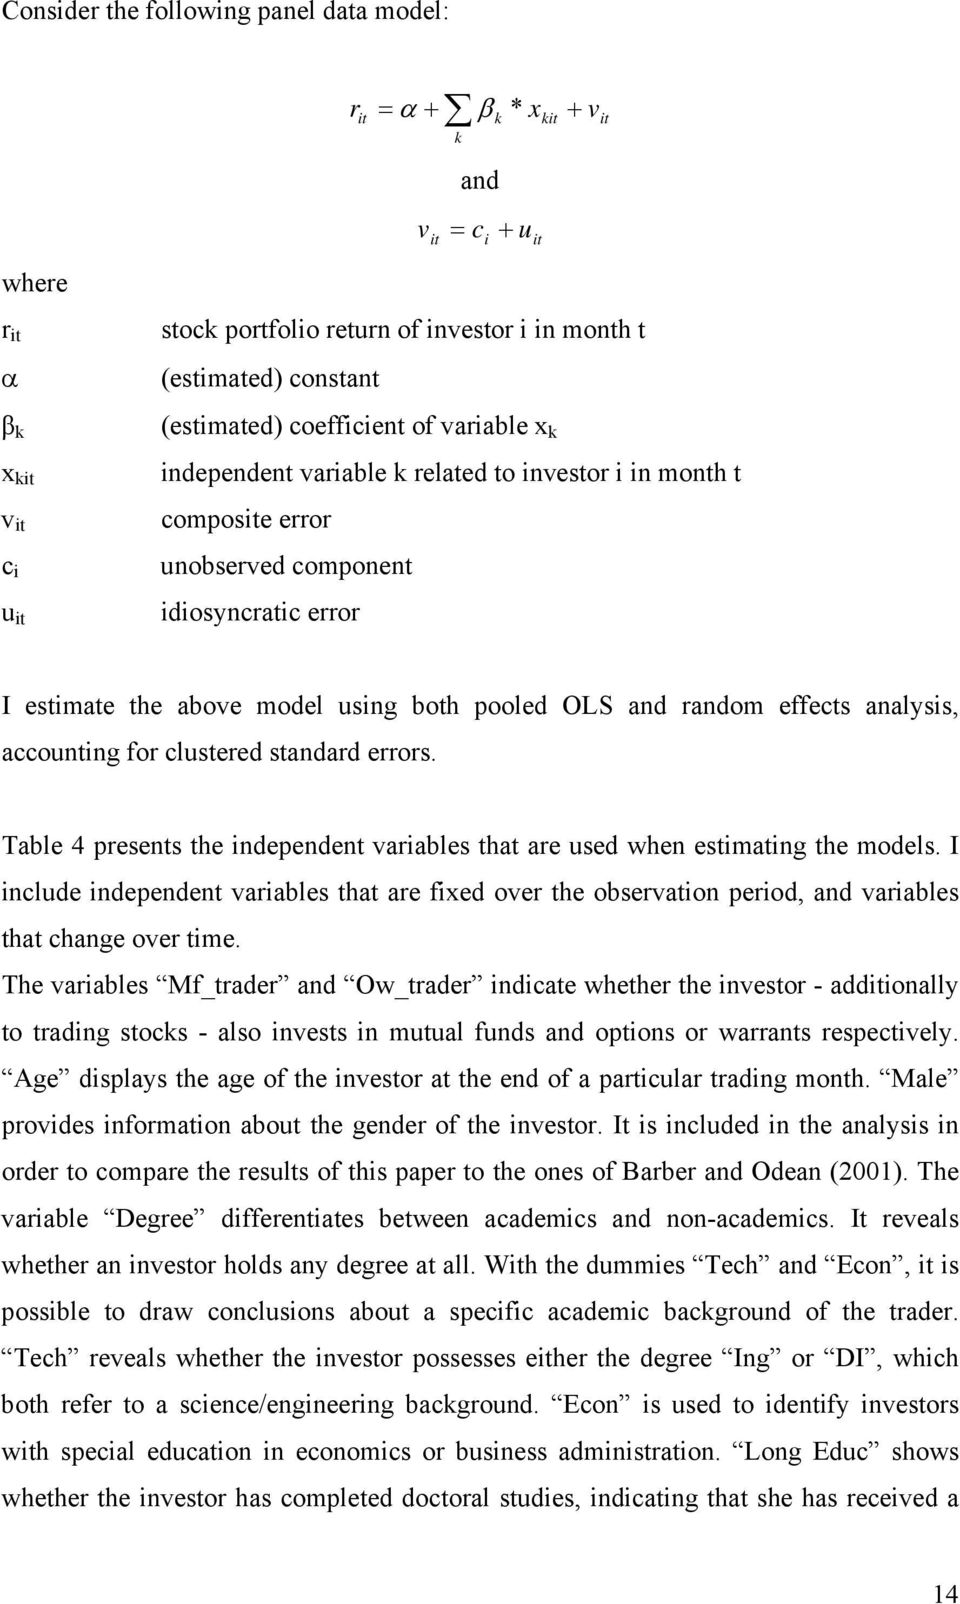 pooled OLS and random effects analysis, accounting for clustered standard errors. Table 4 presents the independent variables that are used when estimating the models.